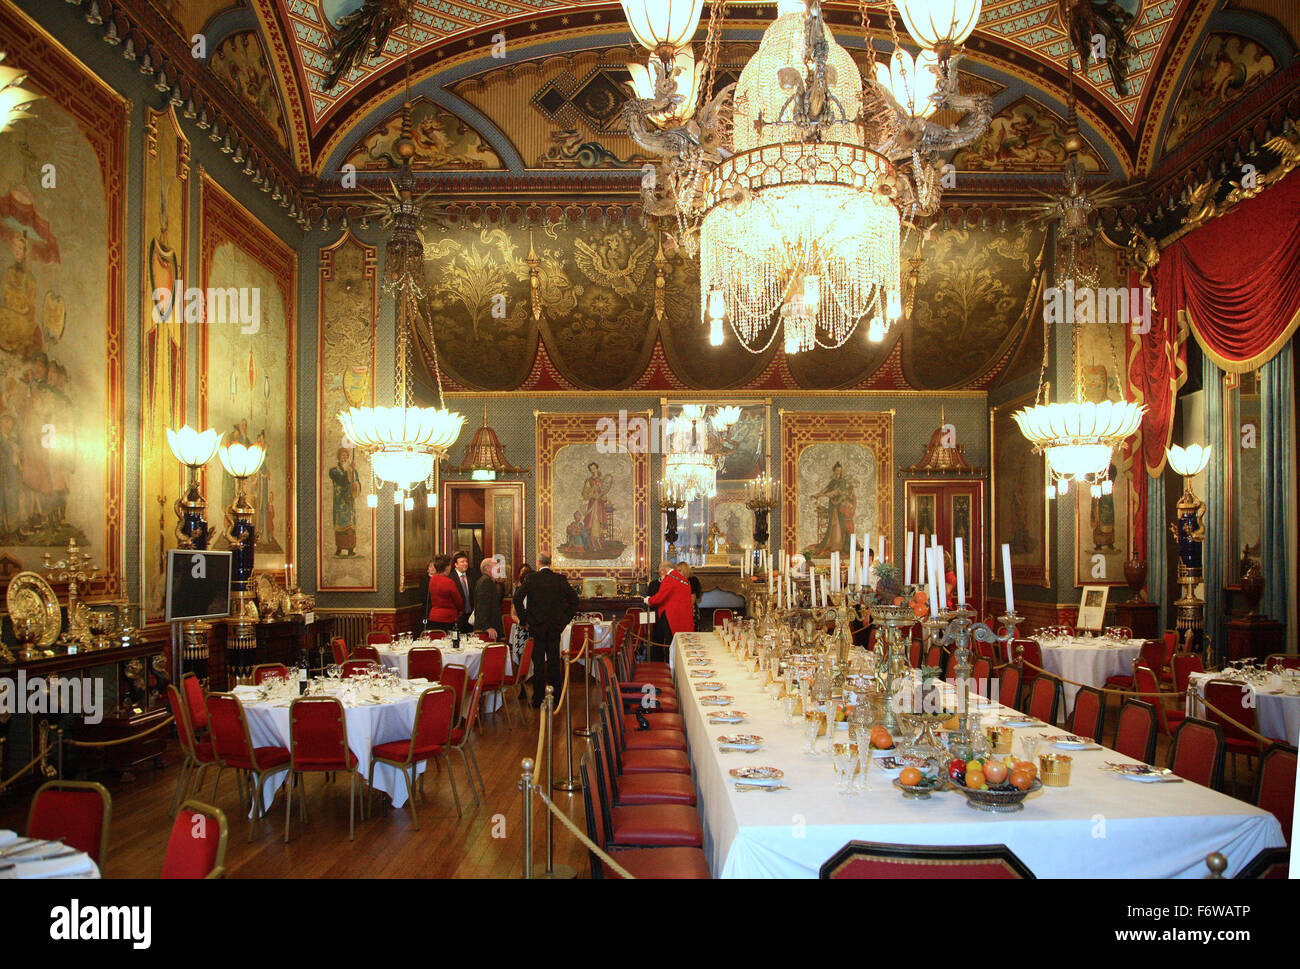 The Dining Room At The Royal Pavilion Building In Brighton, UK. Set Up For  A Corporate Dinner Event